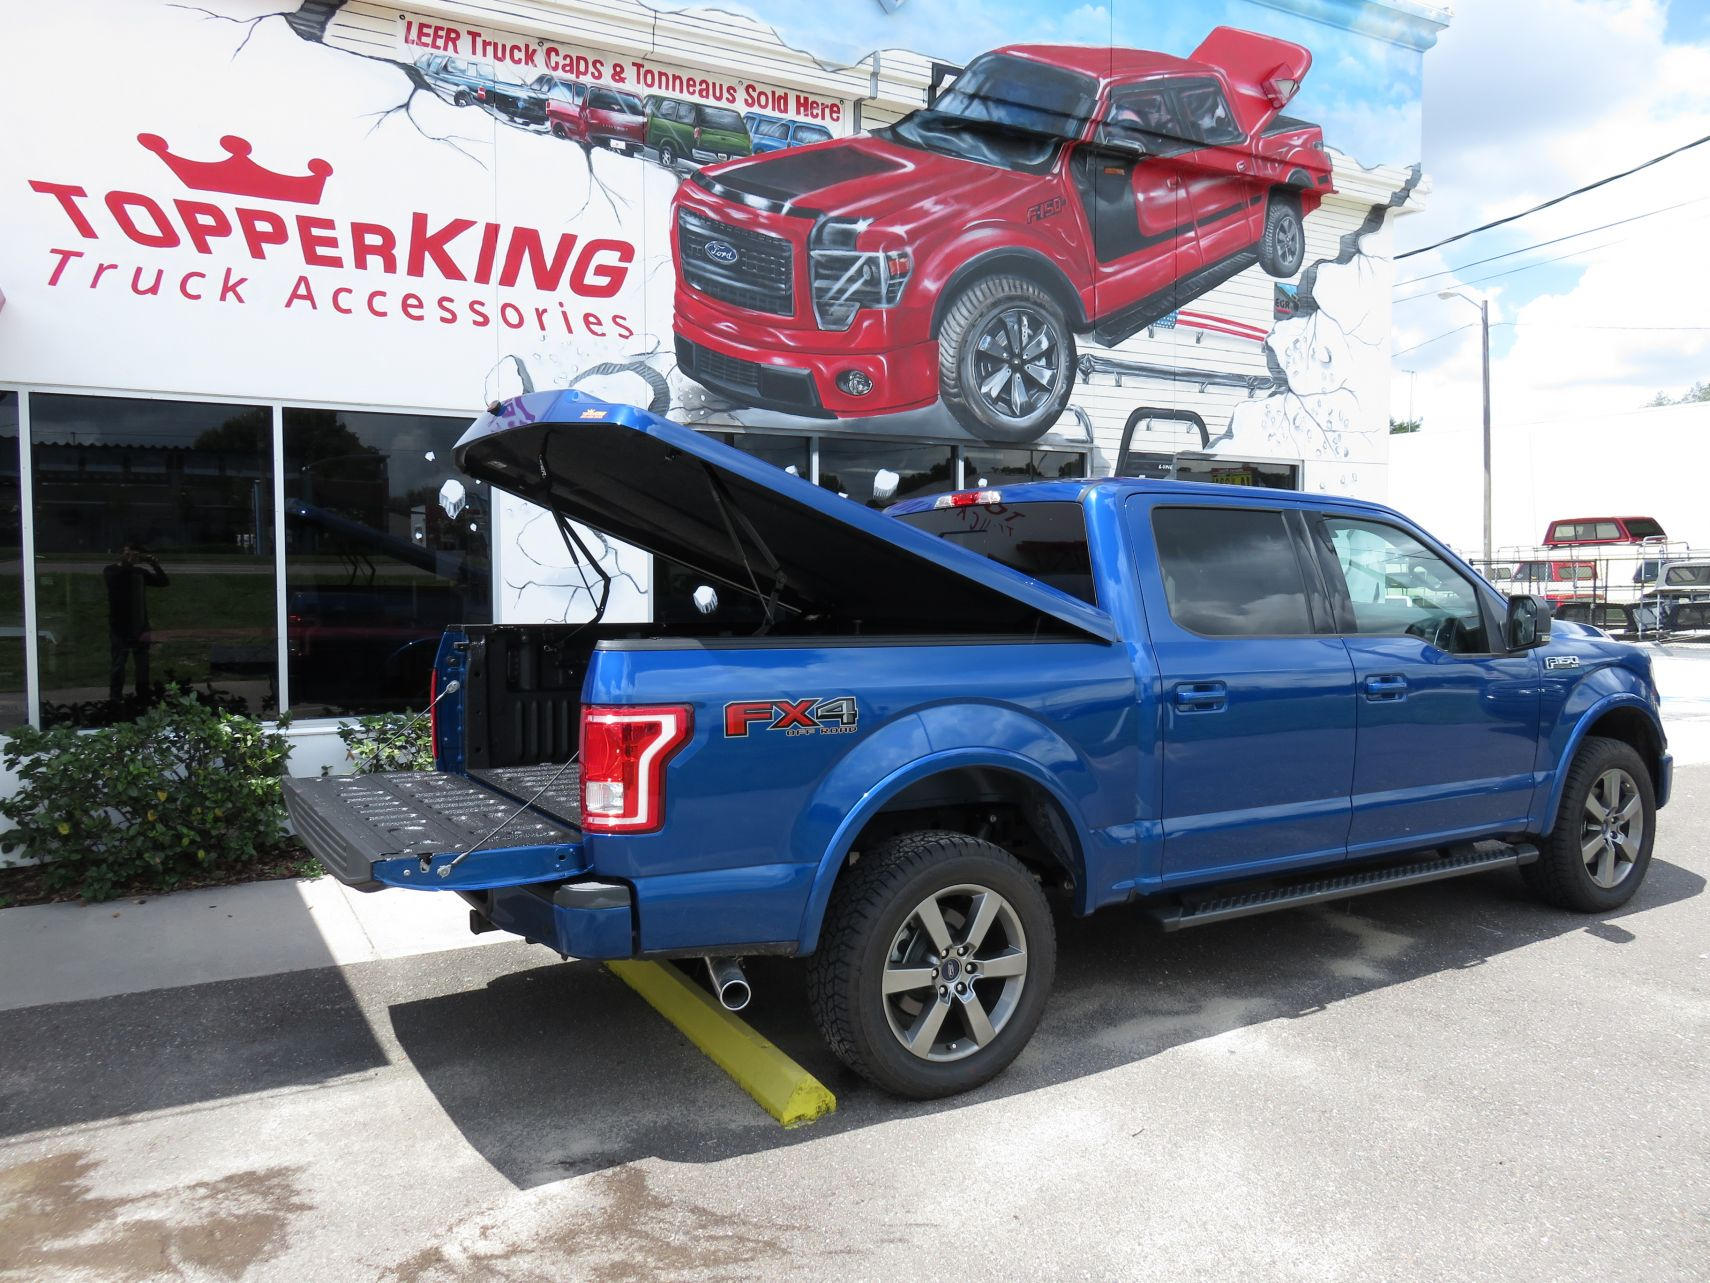 Ford F150 Leer 700 Fiberglass Tonneau Topperking Topperking Providing All Of Tampa Bay With Quality Truck Accessories